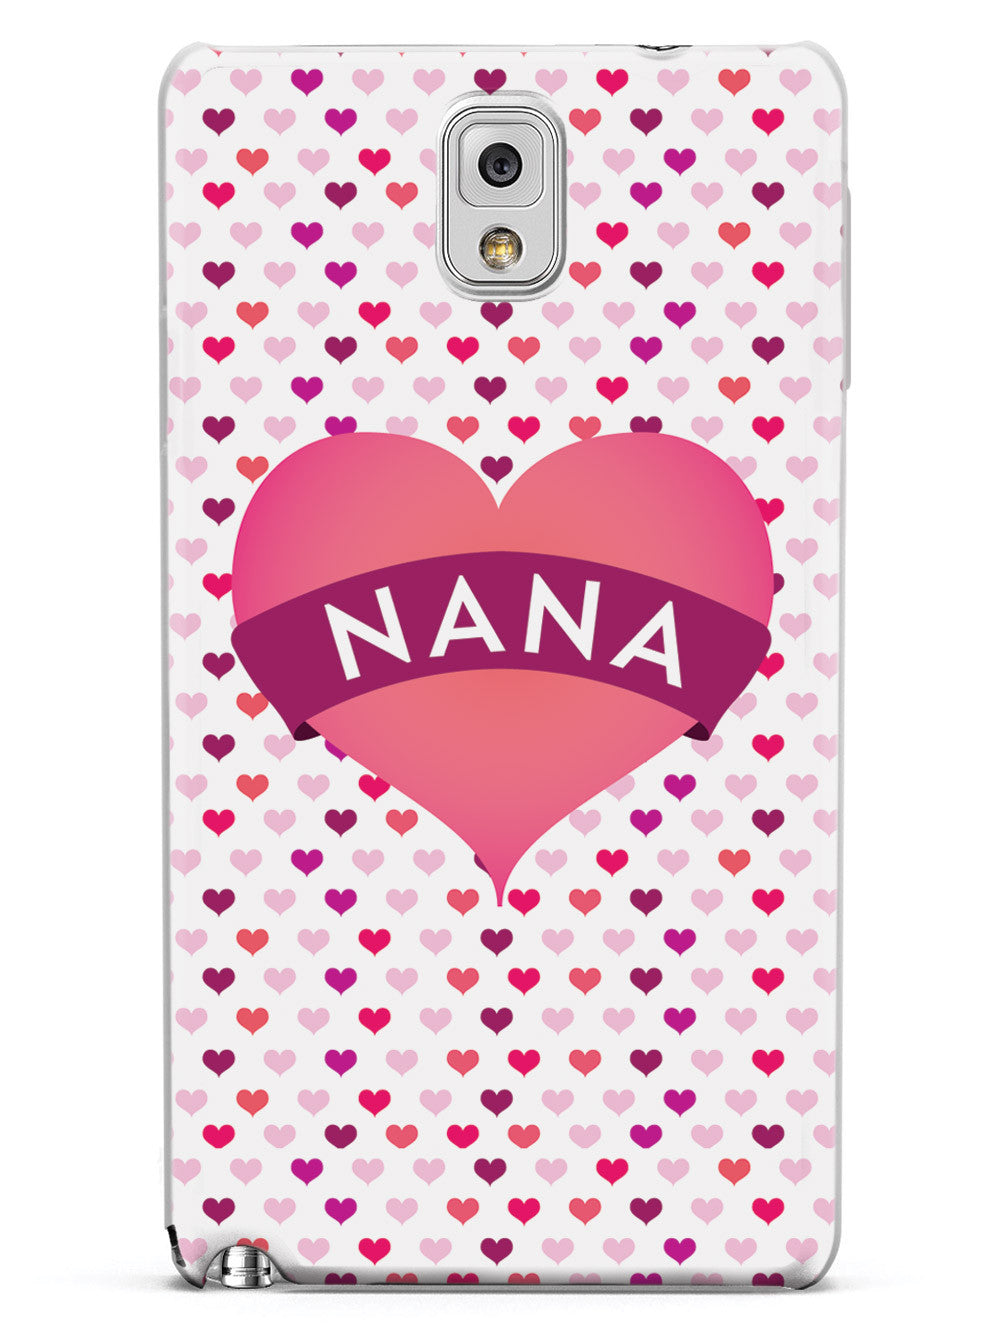 Nana Heart for Grandma Case